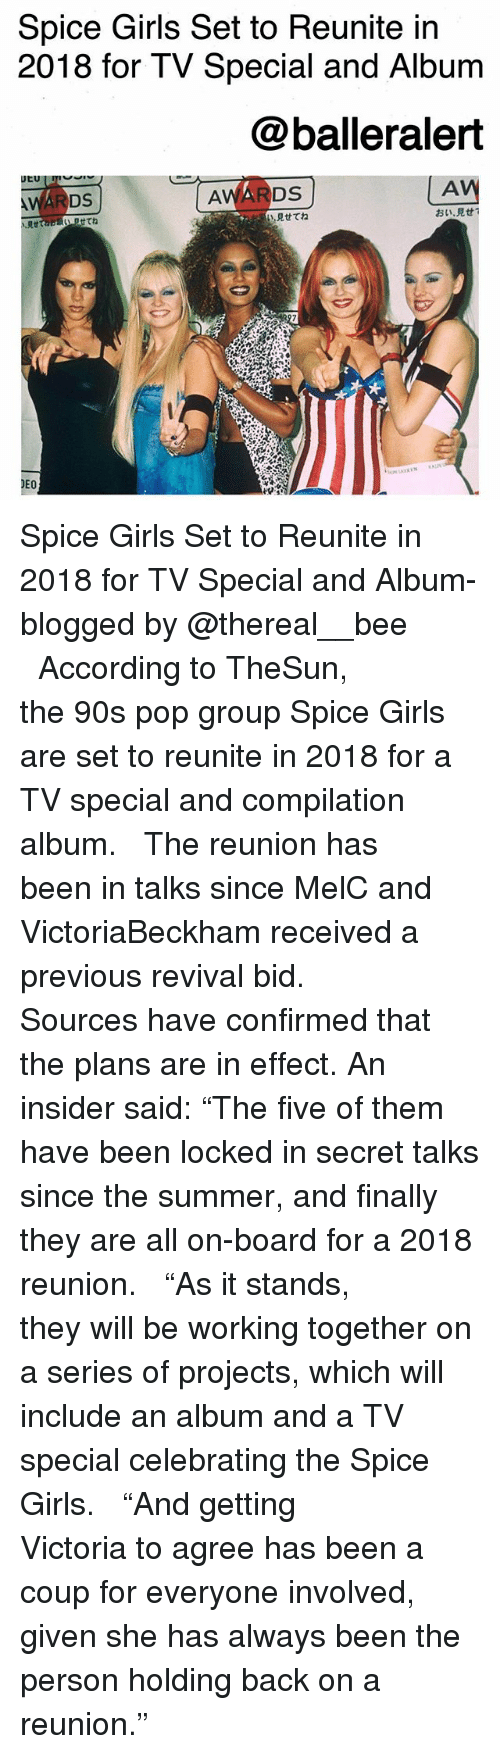 """Spice Girls: Spice Girls Set to Reunite in  2018 for TV Special and Album  @balleralert  AV  見せてね  おい·見せ!  Rtta  せてね  DEO Spice Girls Set to Reunite in 2018 for TV Special and Album-blogged by @thereal__bee ⠀⠀⠀⠀⠀⠀⠀⠀⠀ ⠀⠀ According to TheSun, the 90s pop group Spice Girls are set to reunite in 2018 for a TV special and compilation album. ⠀⠀⠀⠀⠀⠀⠀⠀⠀ ⠀⠀ The reunion has been in talks since MelC and VictoriaBeckham received a previous revival bid. ⠀⠀⠀⠀⠀⠀⠀⠀⠀ ⠀⠀ Sources have confirmed that the plans are in effect. An insider said: """"The five of them have been locked in secret talks since the summer, and finally they are all on-board for a 2018 reunion. ⠀⠀⠀⠀⠀⠀⠀⠀⠀ ⠀⠀ """"As it stands, they will be working together on a series of projects, which will include an album and a TV special celebrating the Spice Girls. ⠀⠀⠀⠀⠀⠀⠀⠀⠀ ⠀⠀ """"And getting Victoria to agree has been a coup for everyone involved, given she has always been the person holding back on a reunion."""""""